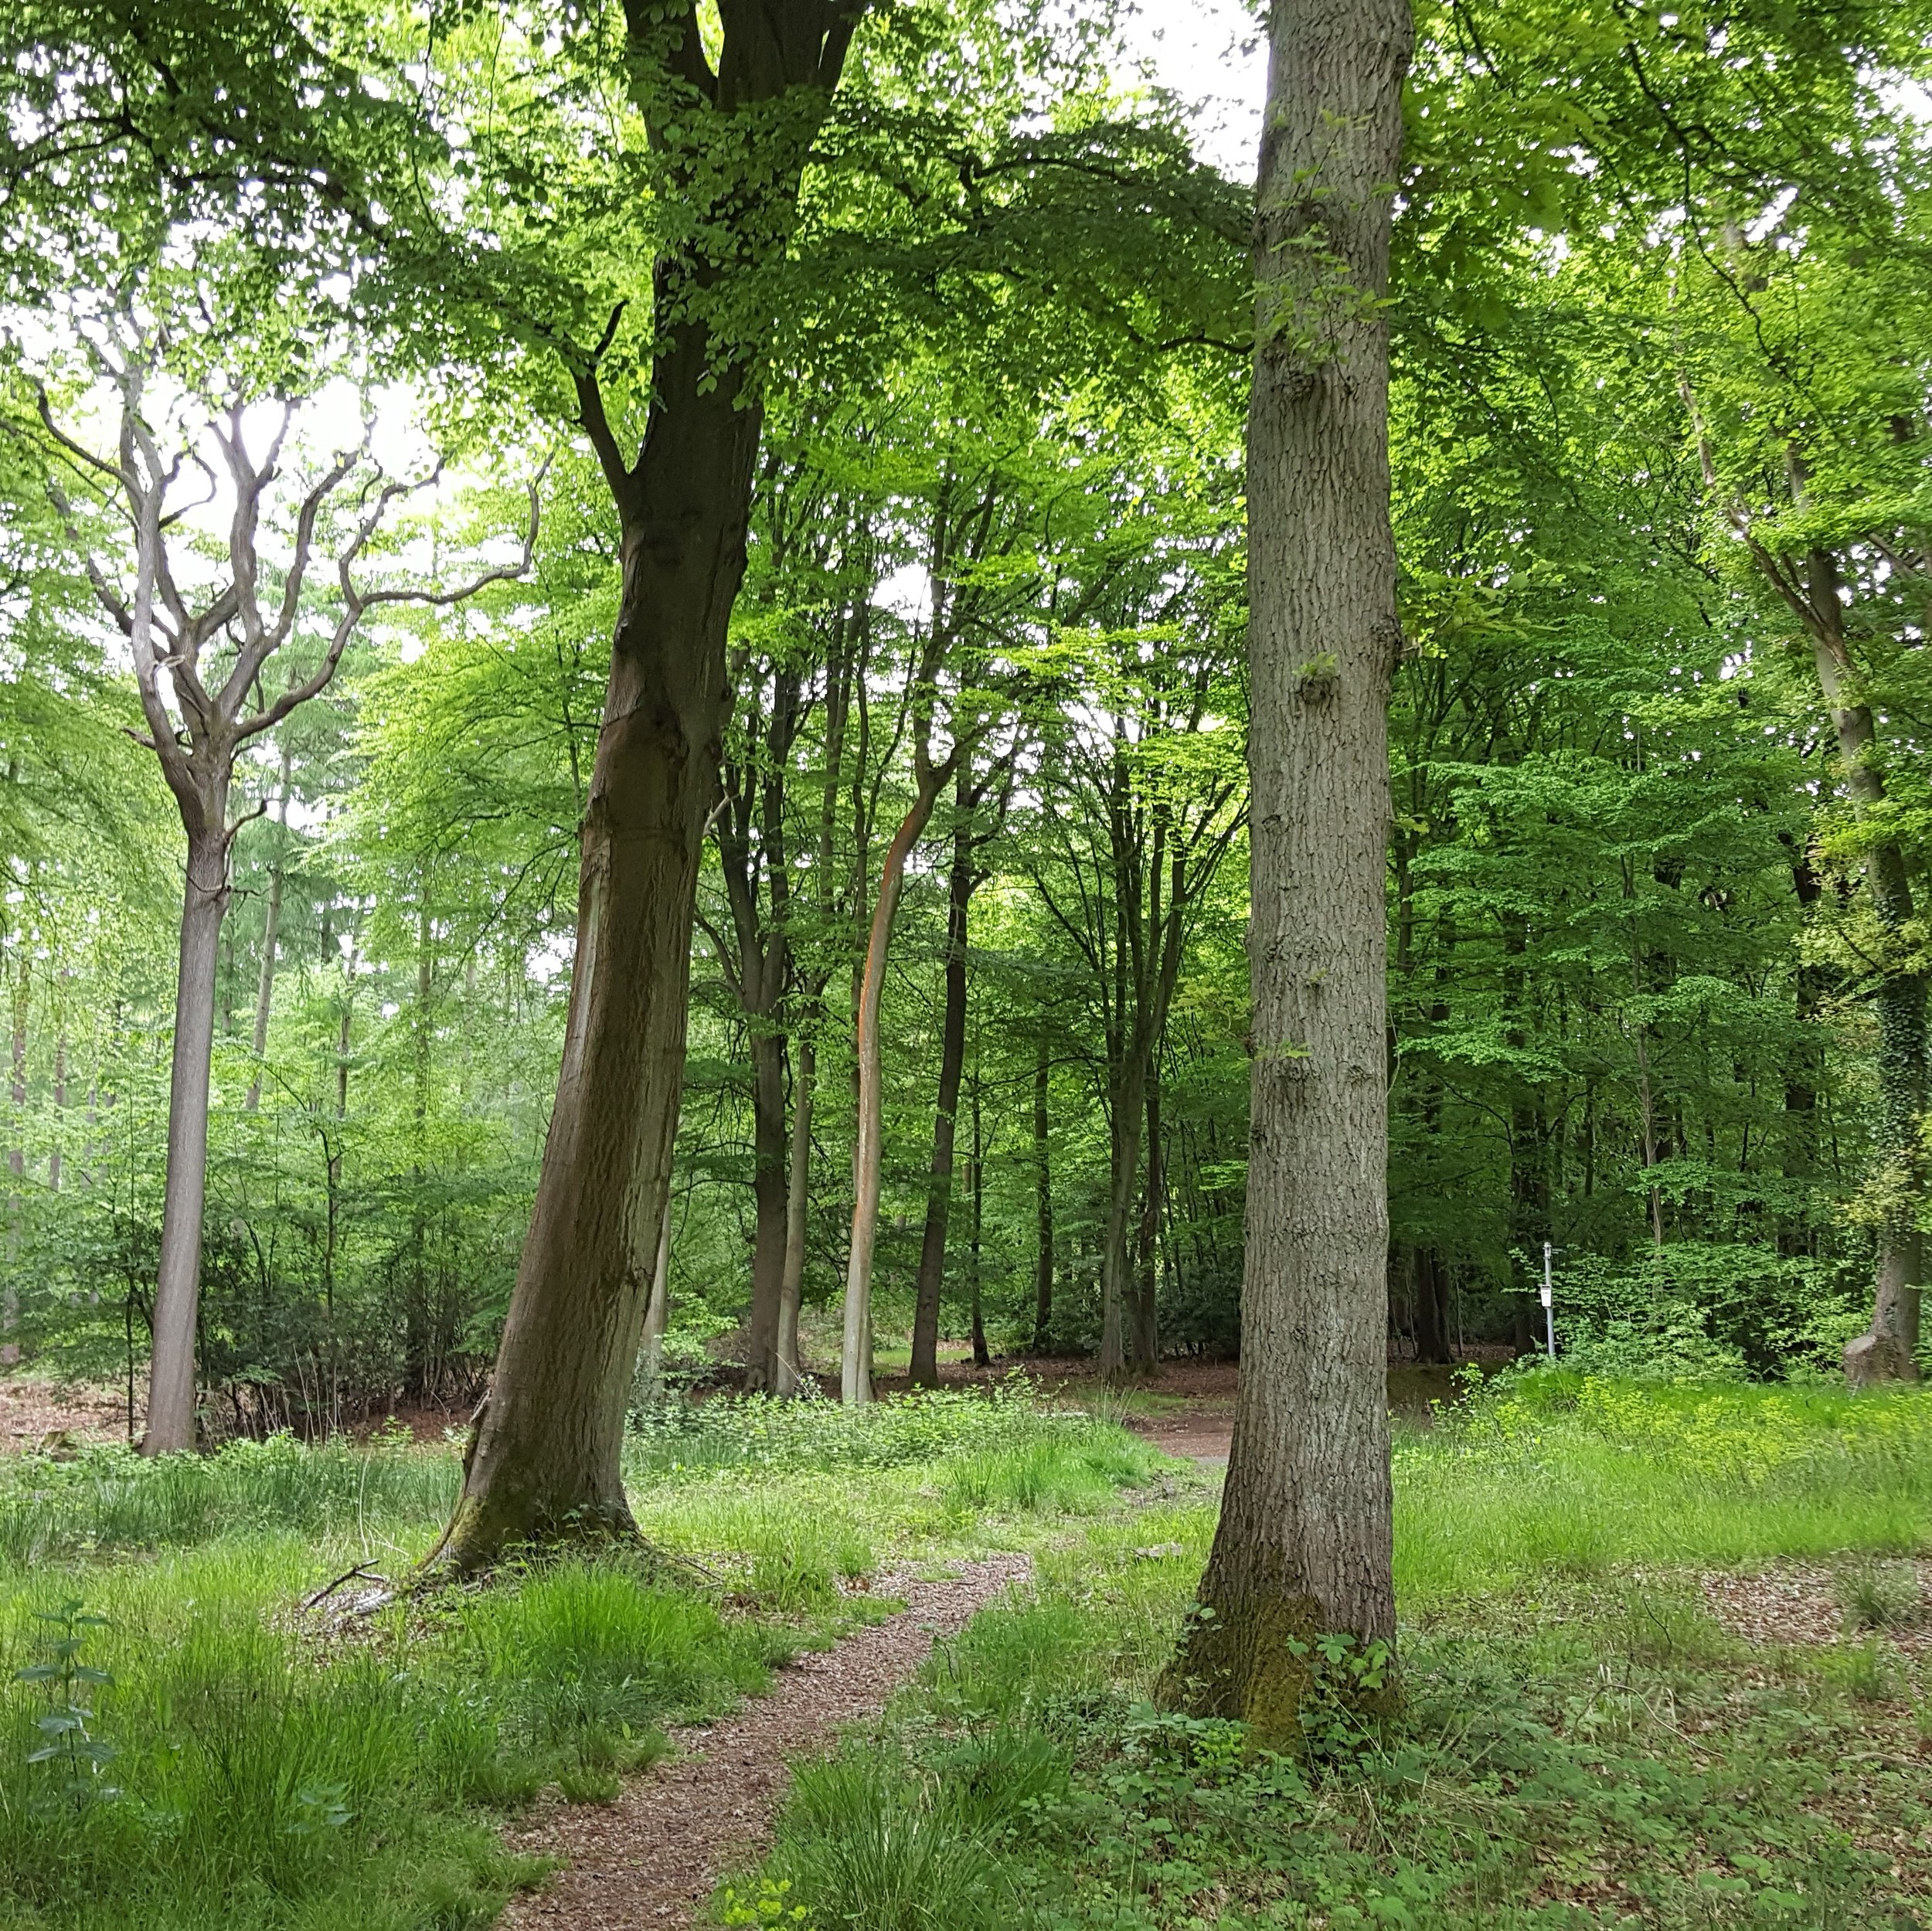 I took myself off for a woodland walk before heading back down the M4